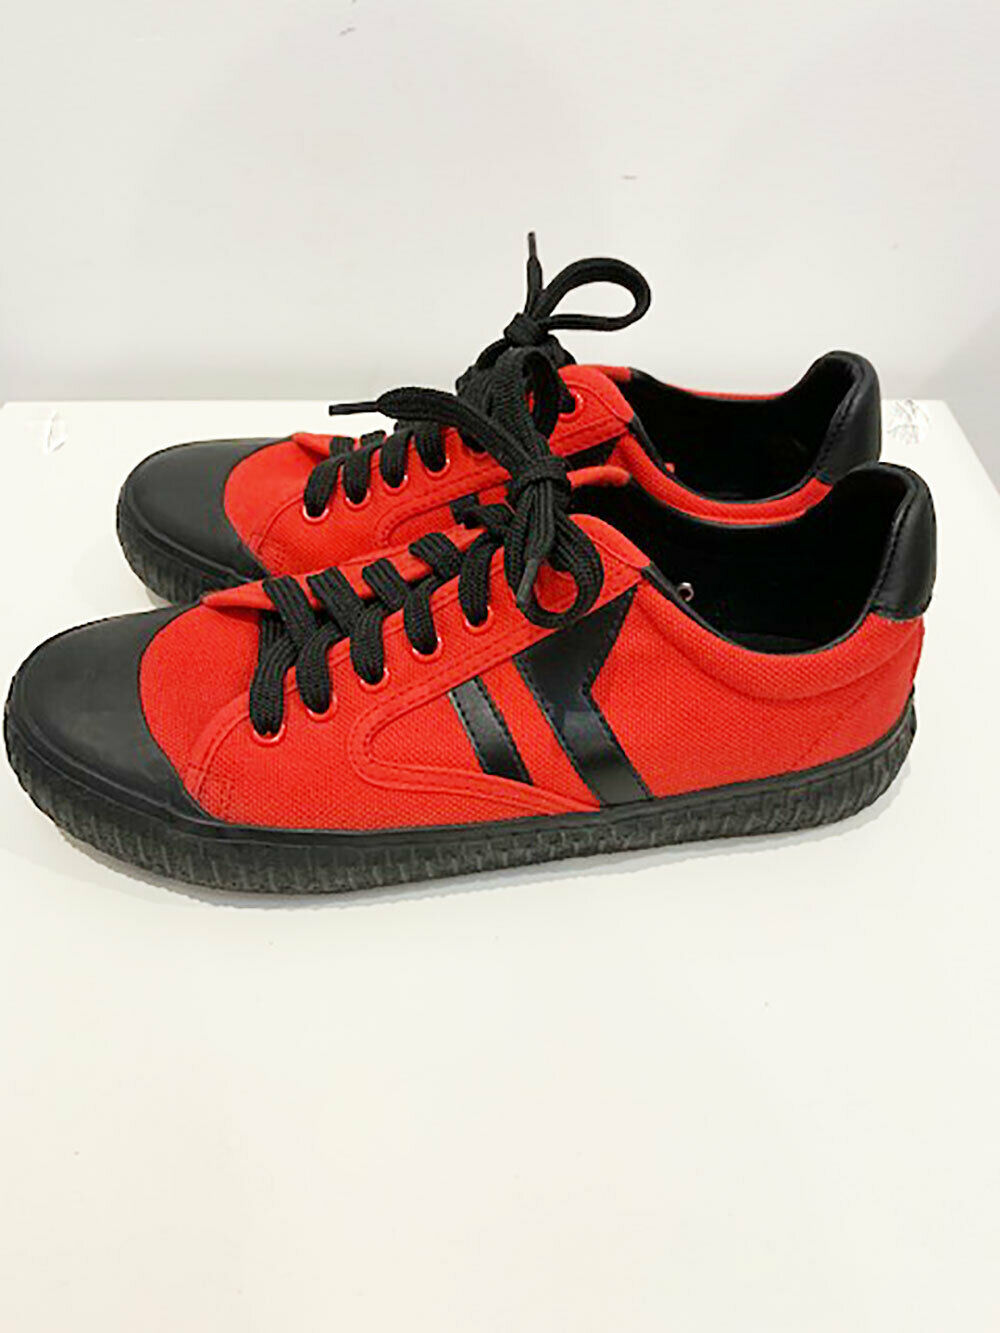 Designer Celine Paris 38 Red Low Top Canvas (Worn For An Hour) Women's Sneakers